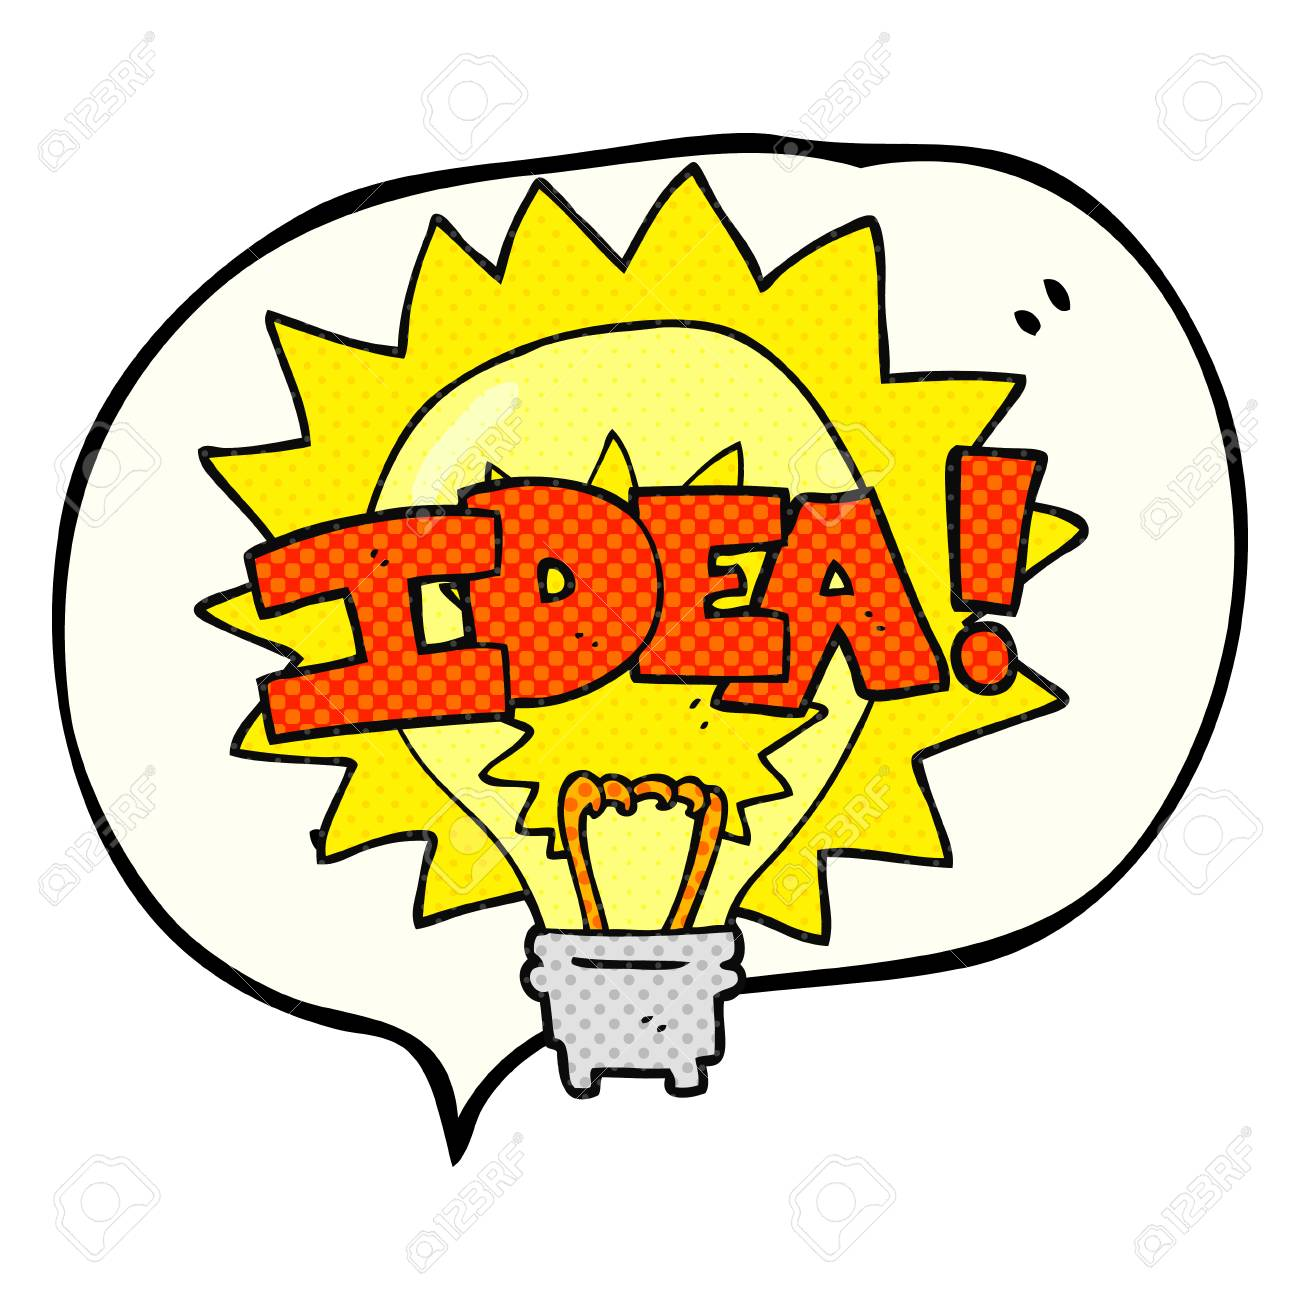 comic book speech bubble cartoon idea light bulb symbol